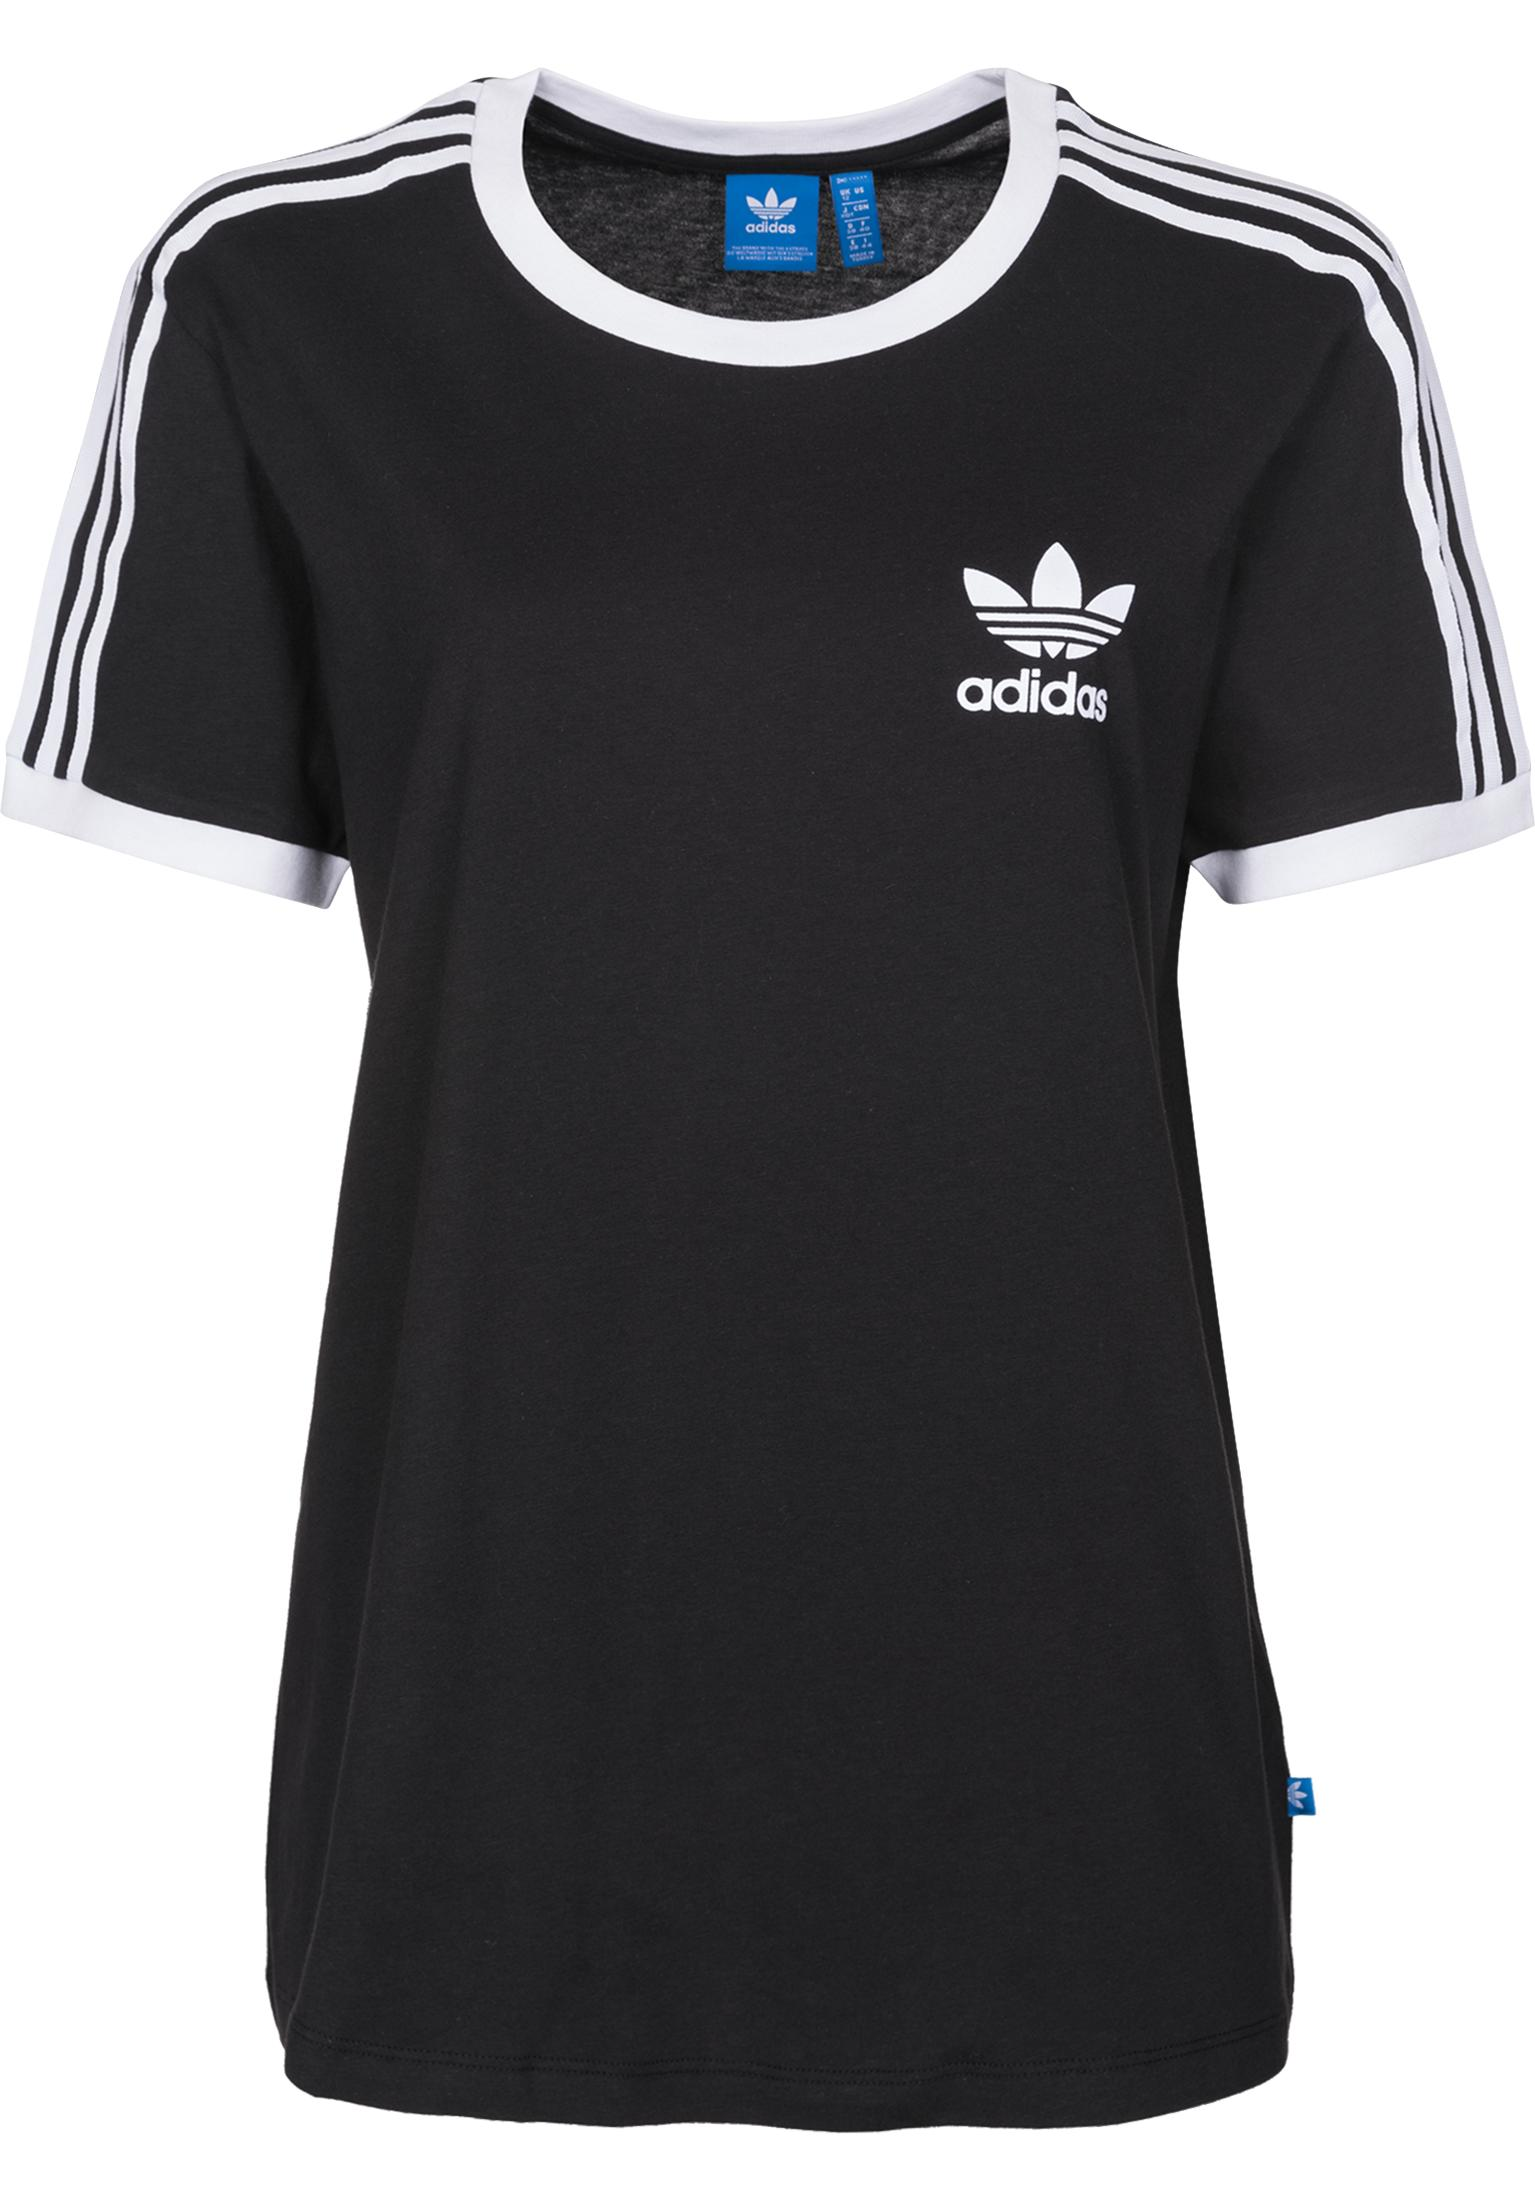 3 stripes adidas t shirts in black f r damen titus. Black Bedroom Furniture Sets. Home Design Ideas